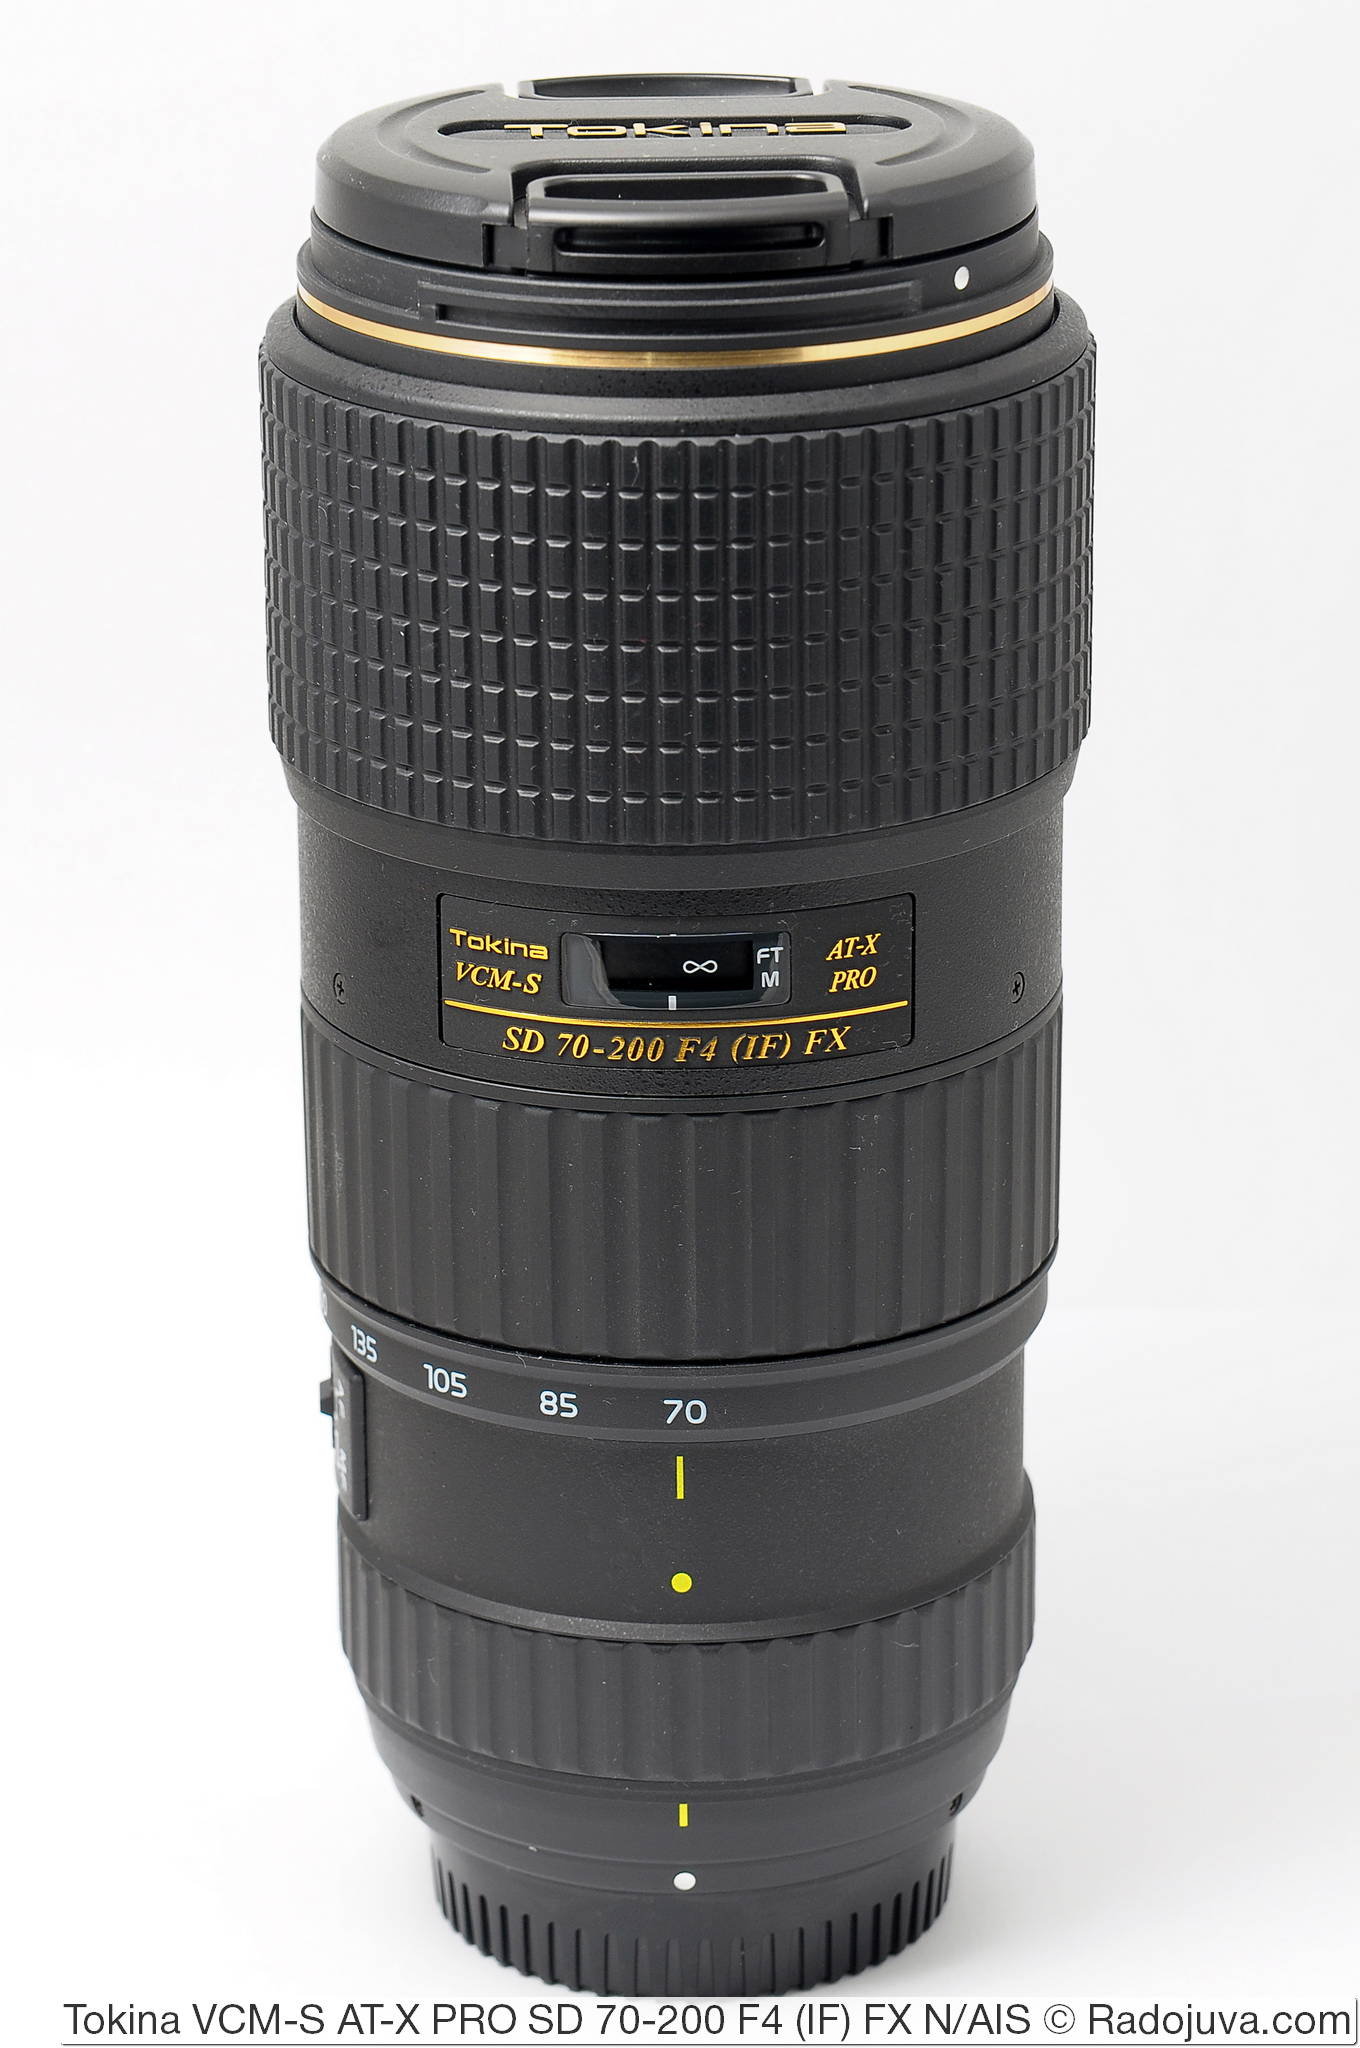 Tokina VCM-S AT-X PRO SD 70-200 F4 (IF) FX